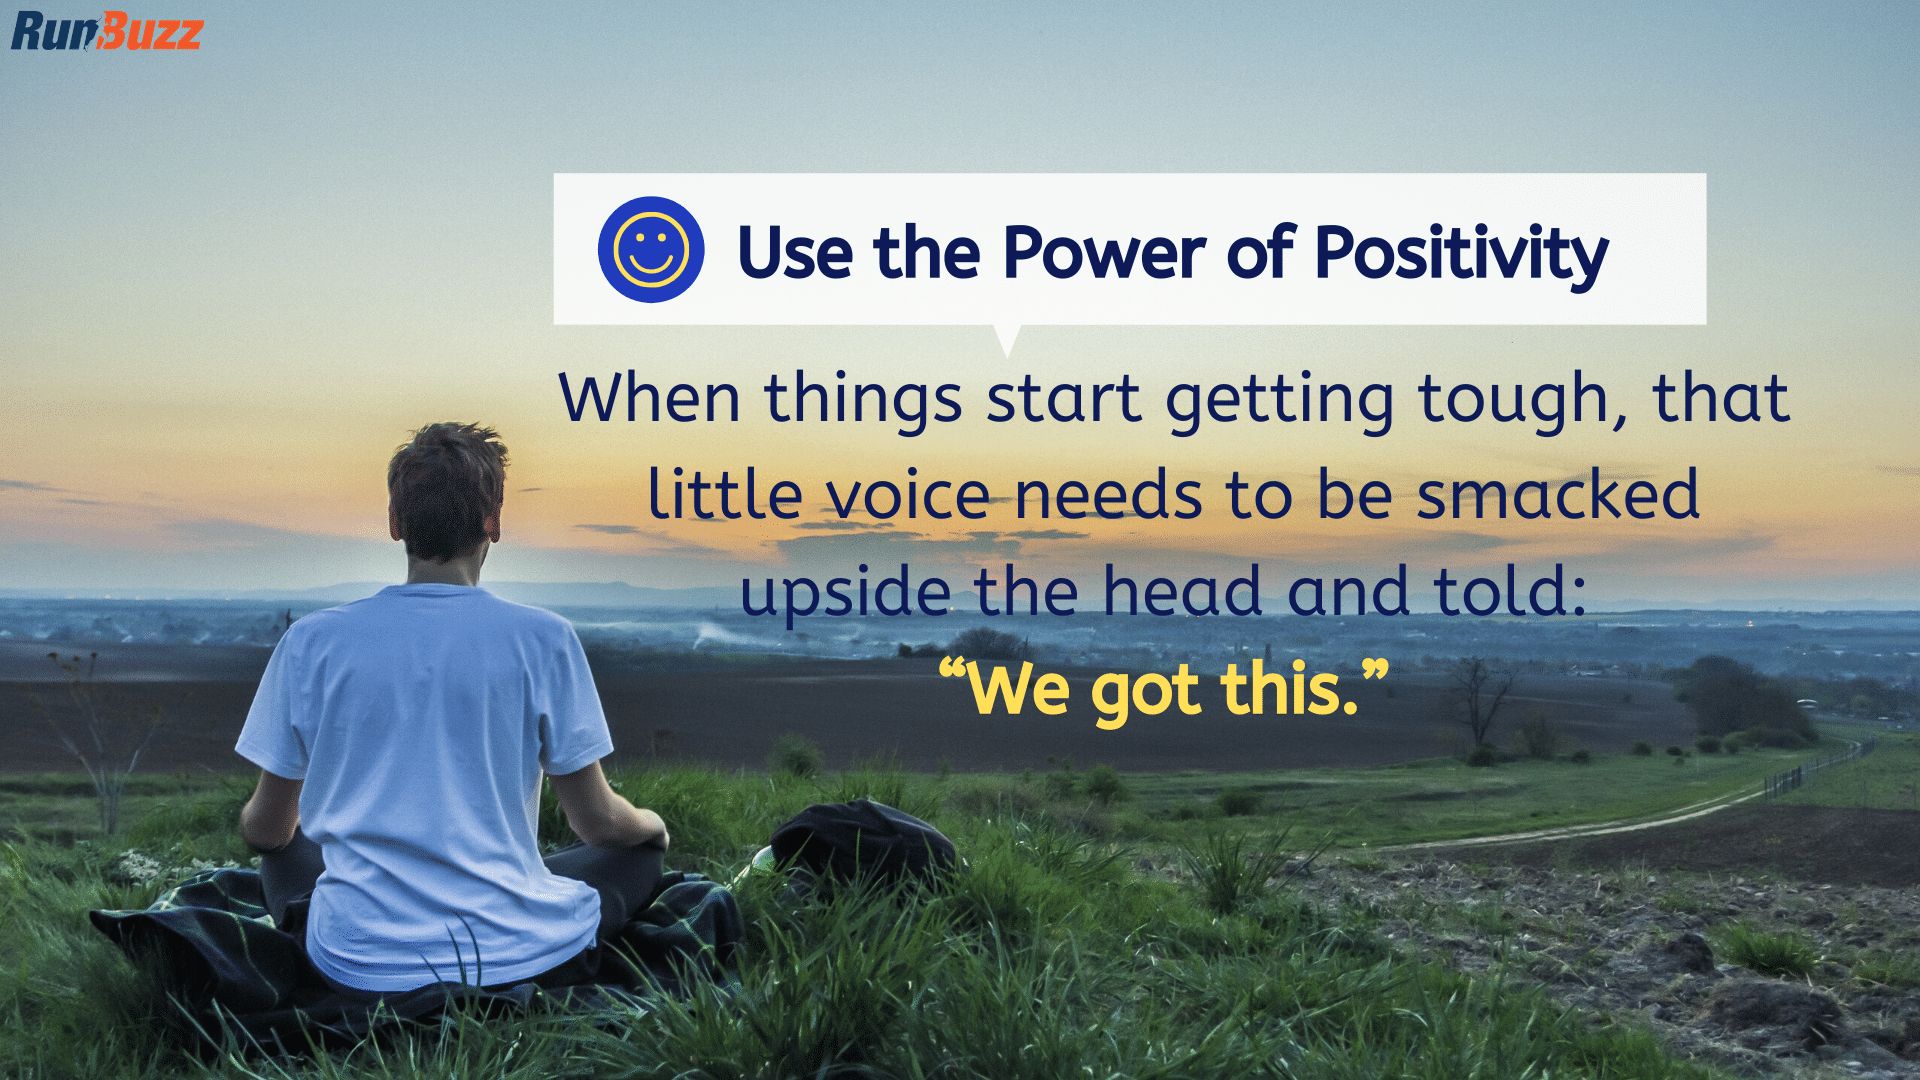 Use-the-Power-of-Positivity